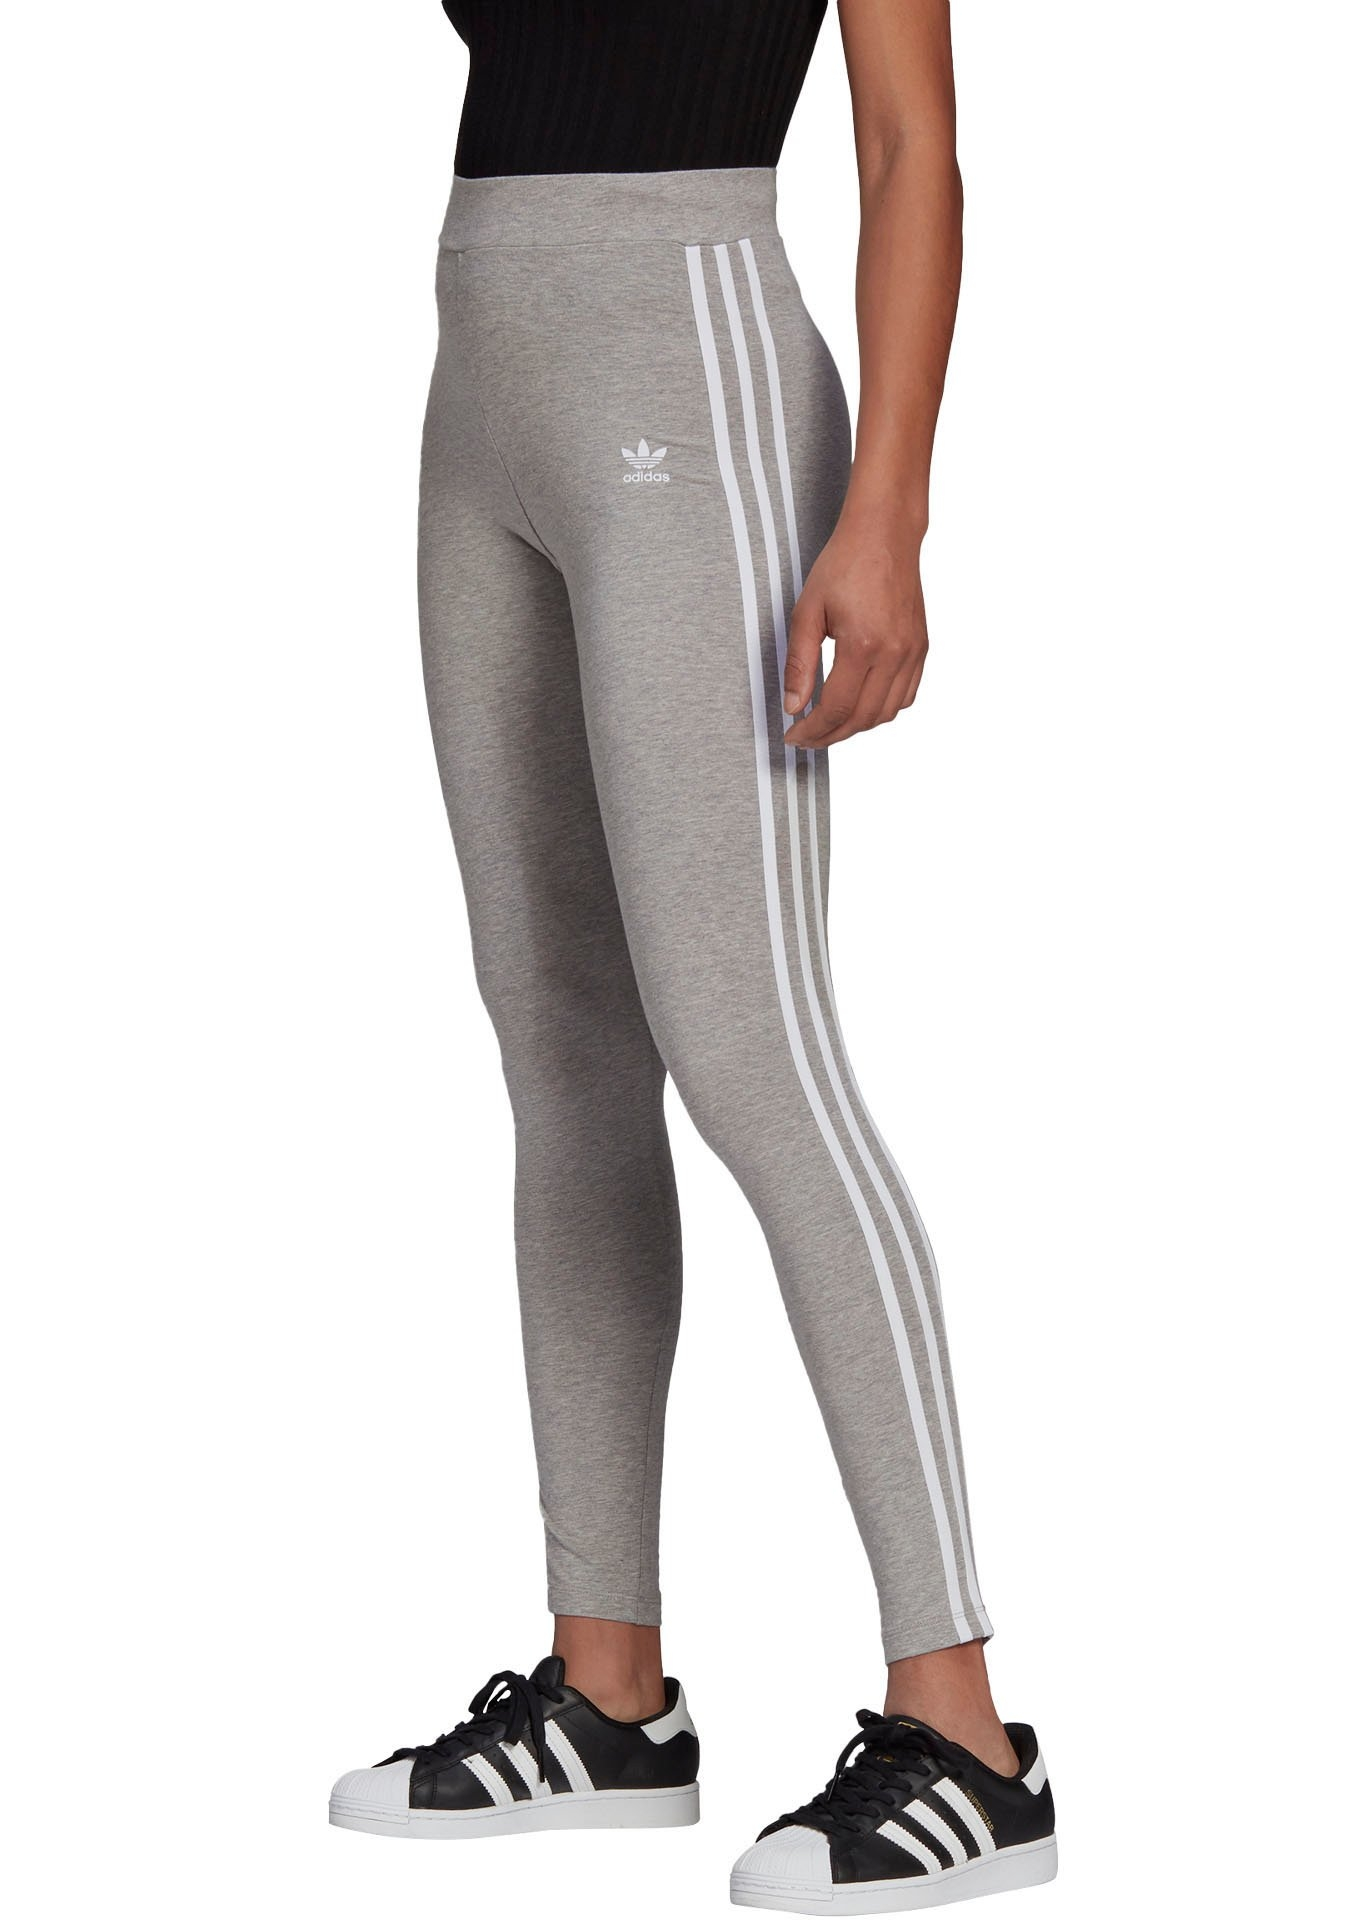 adidas Originals legging »3 STRIPES TIGHT« - gratis ruilen op otto.nl